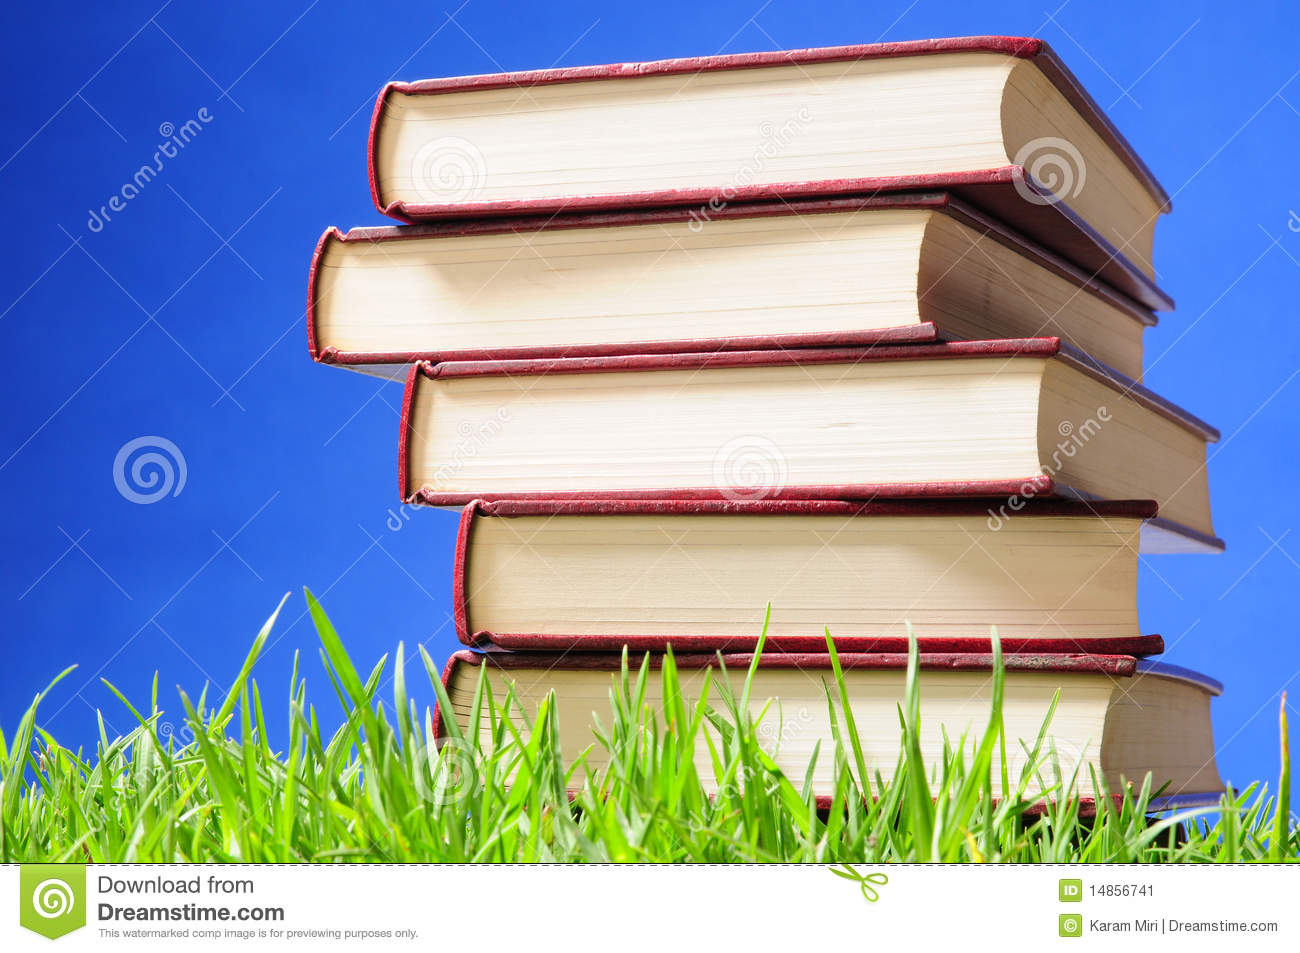 Books. Educational concept.